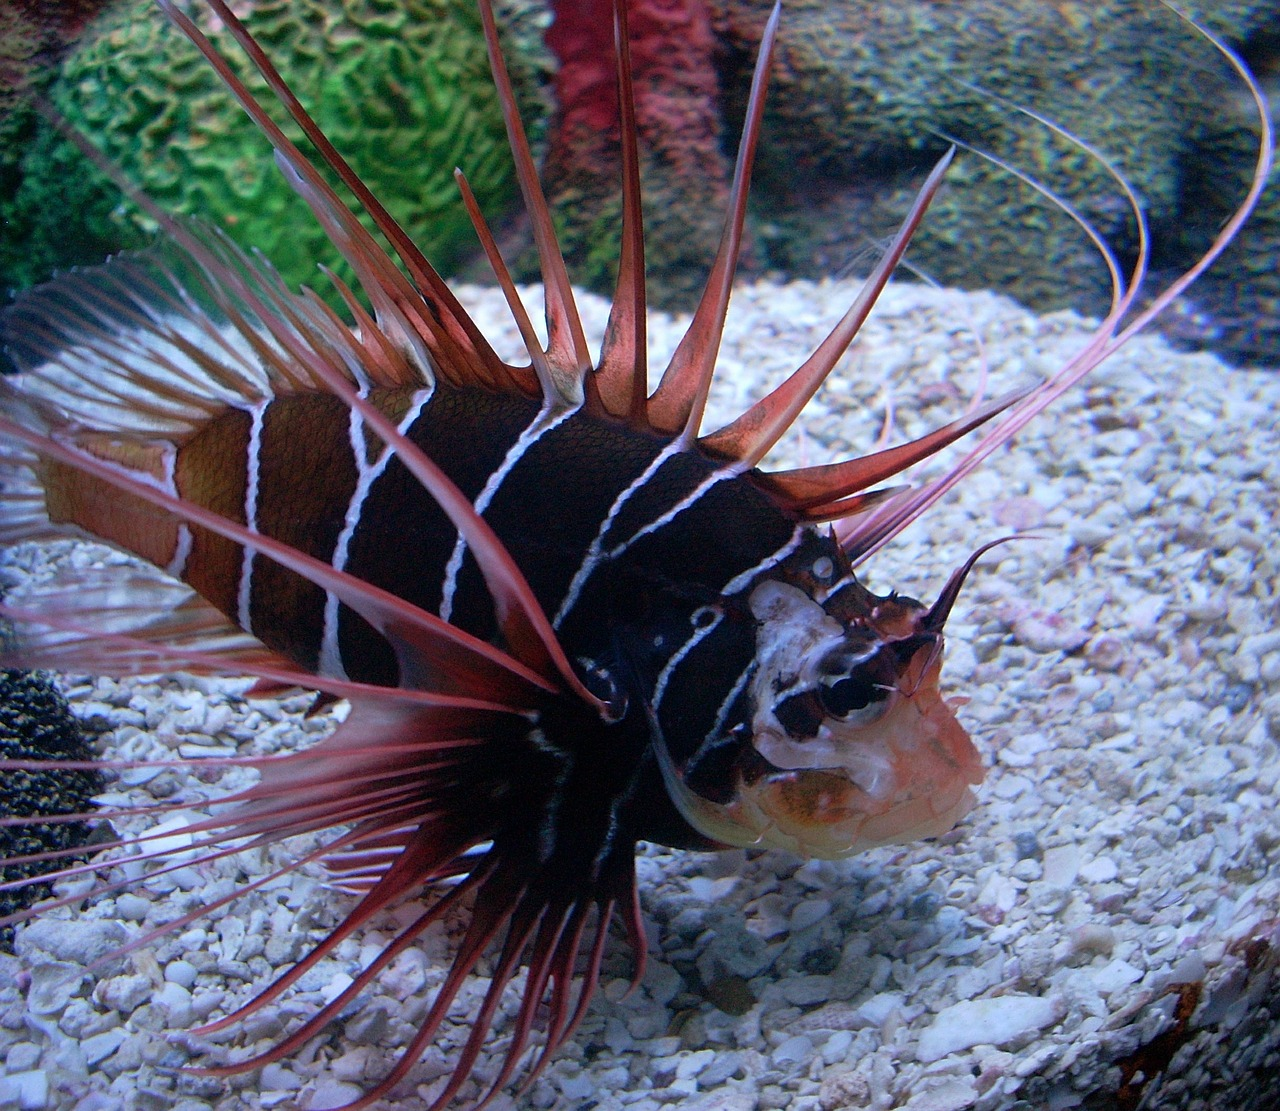 clearfin lionfish fish venomous spines free photo